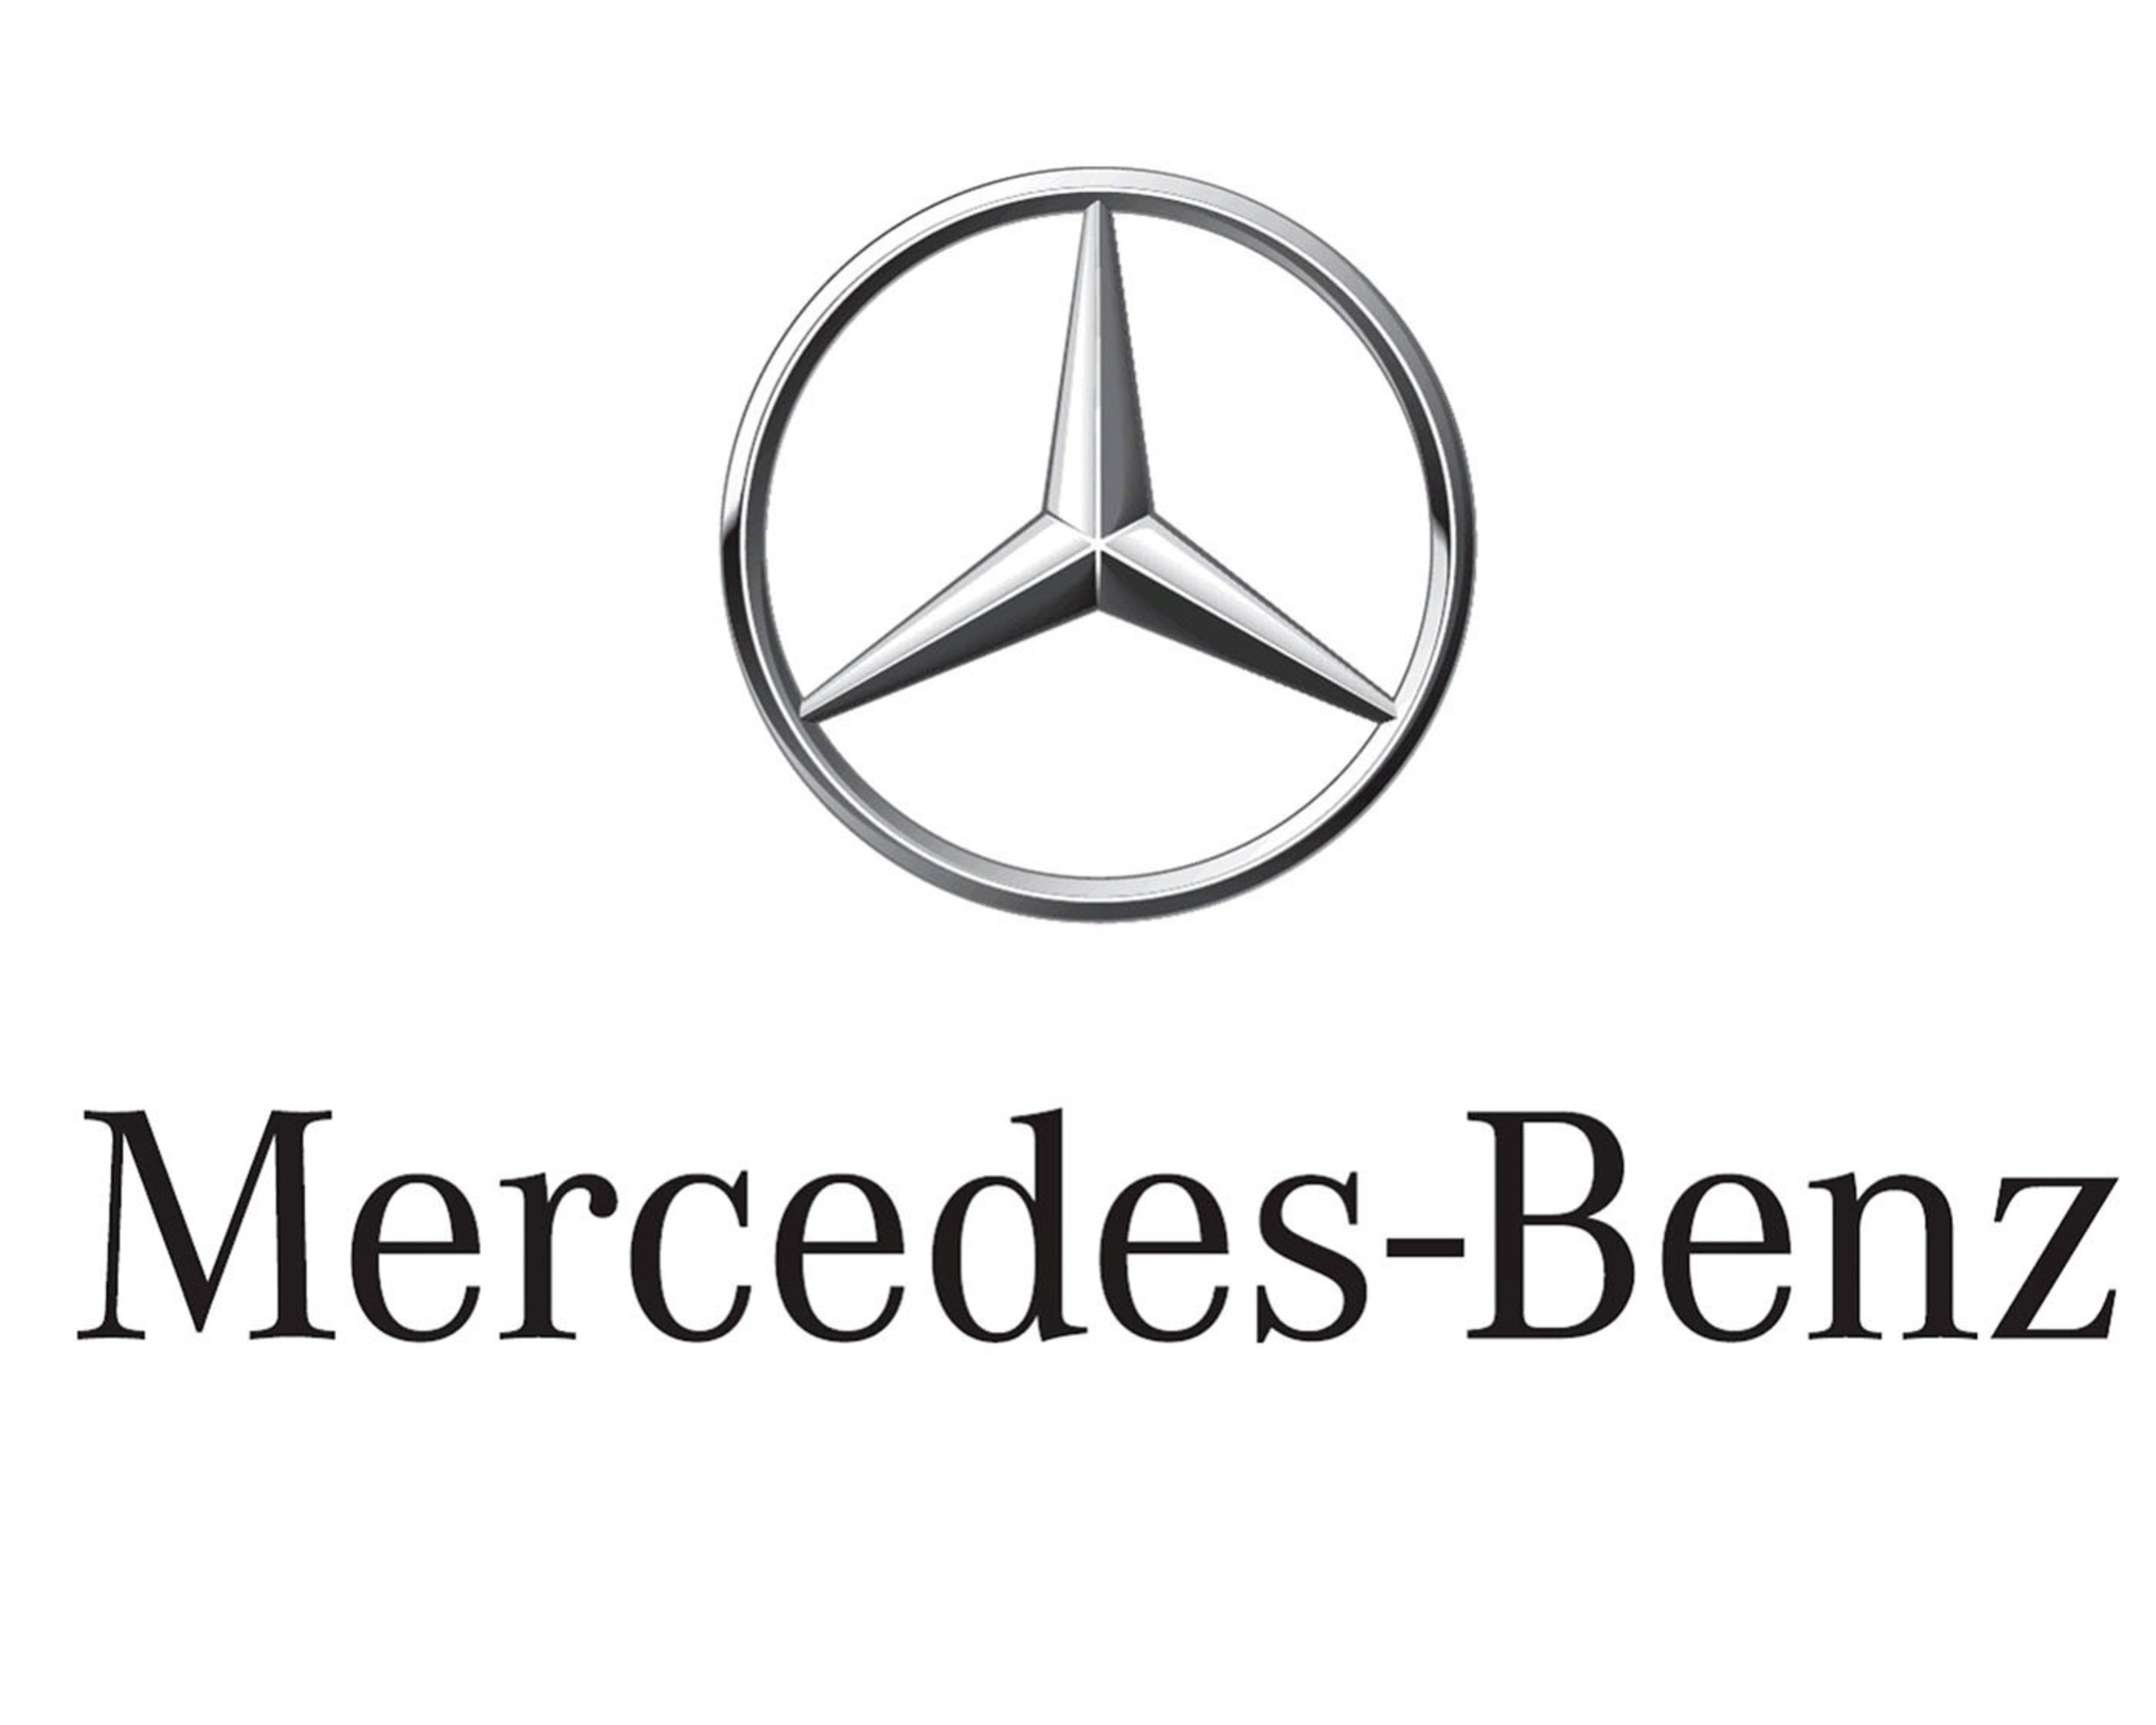 New 2011 3D Mercedes-Benz USA logo.